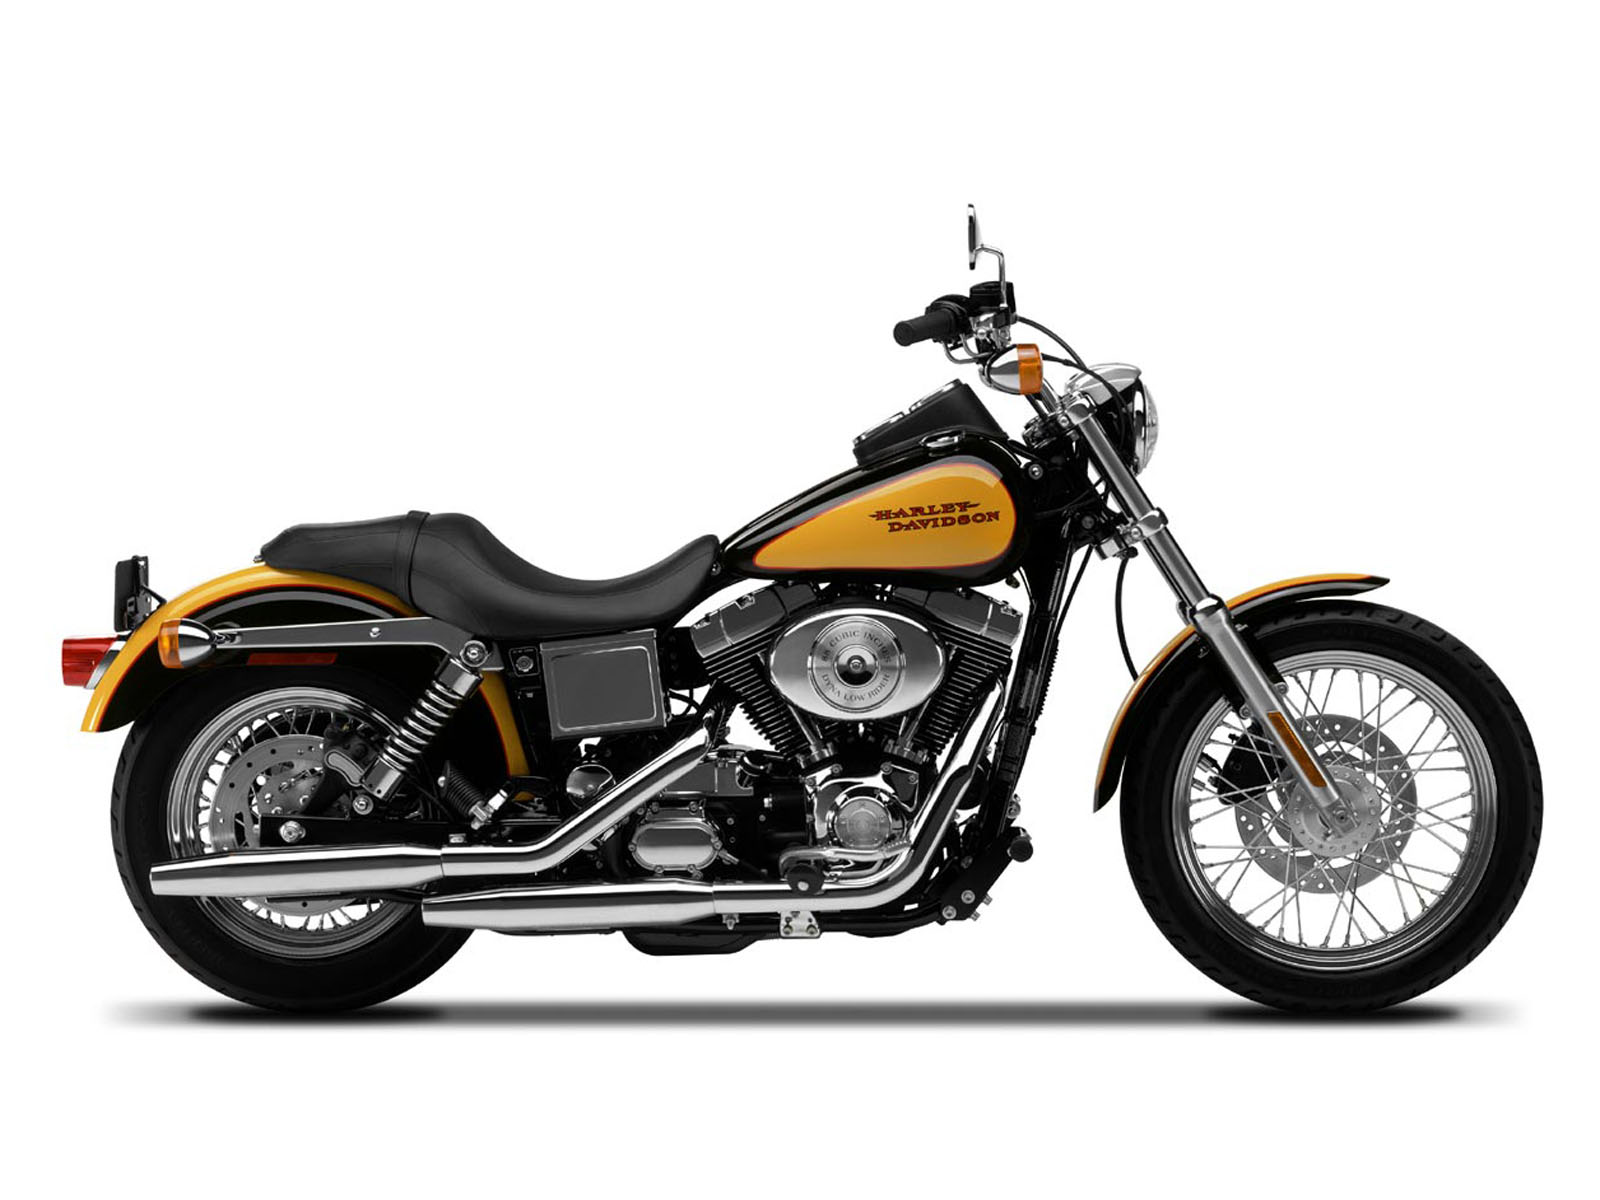 wallpapers american harley davidson bikes wallpapers